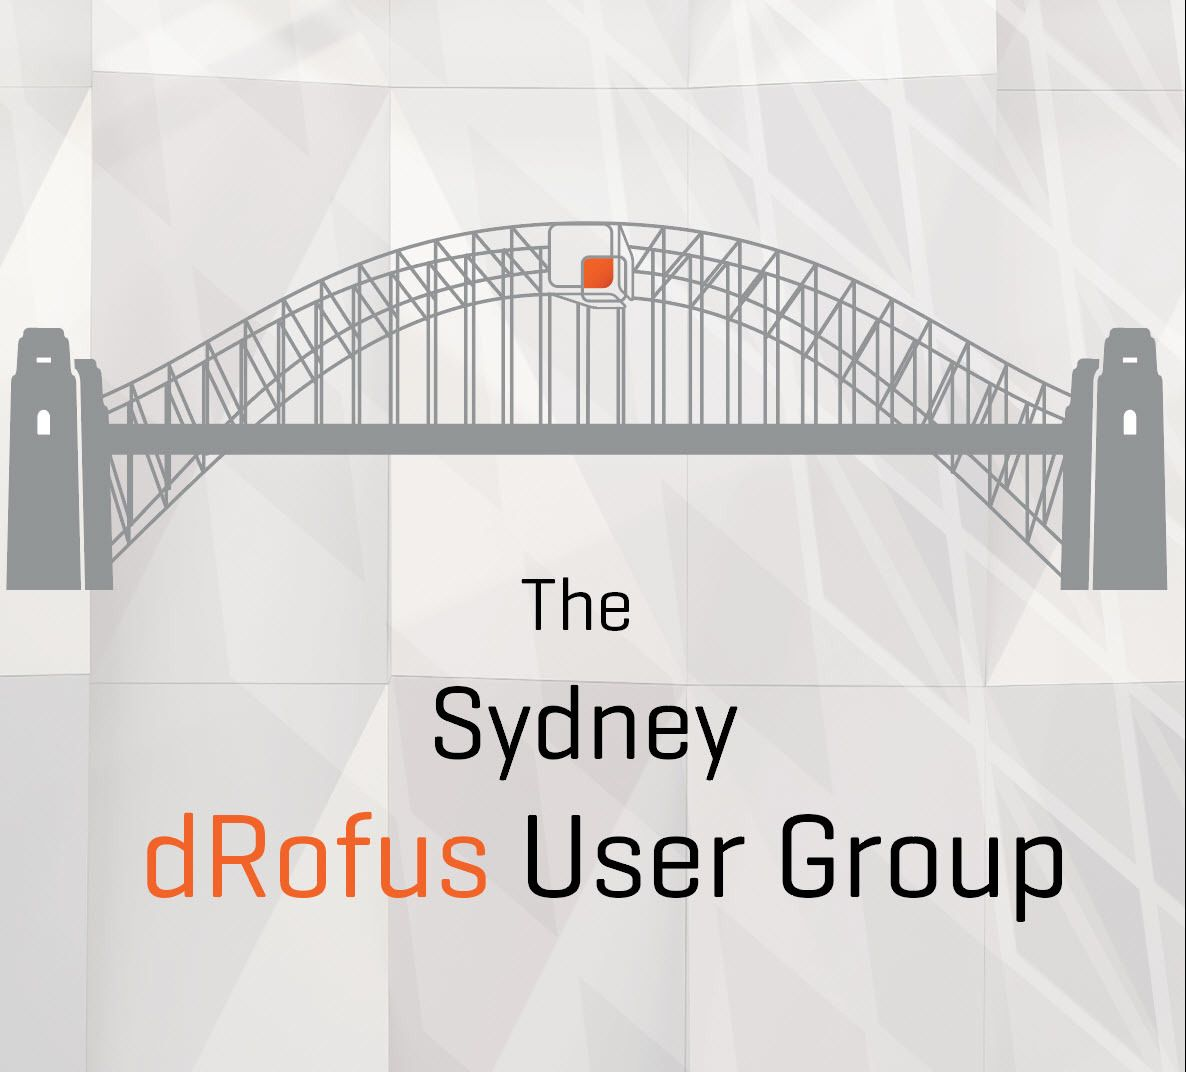 Sydney dRofus User Group